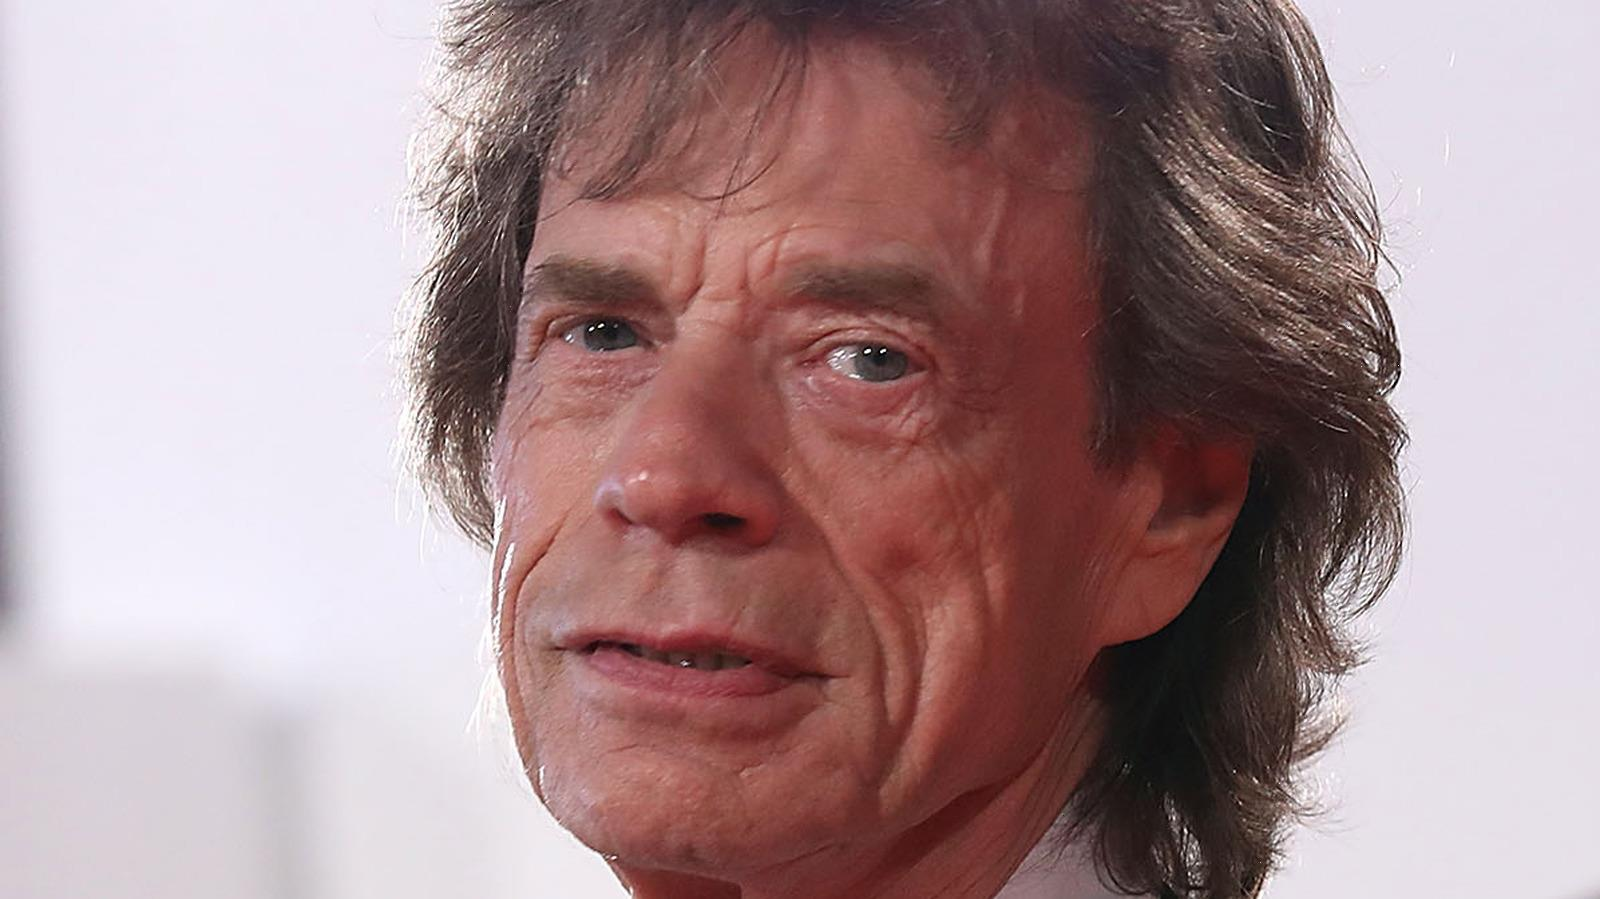 Who Are Mick Jagger's Talented Children?